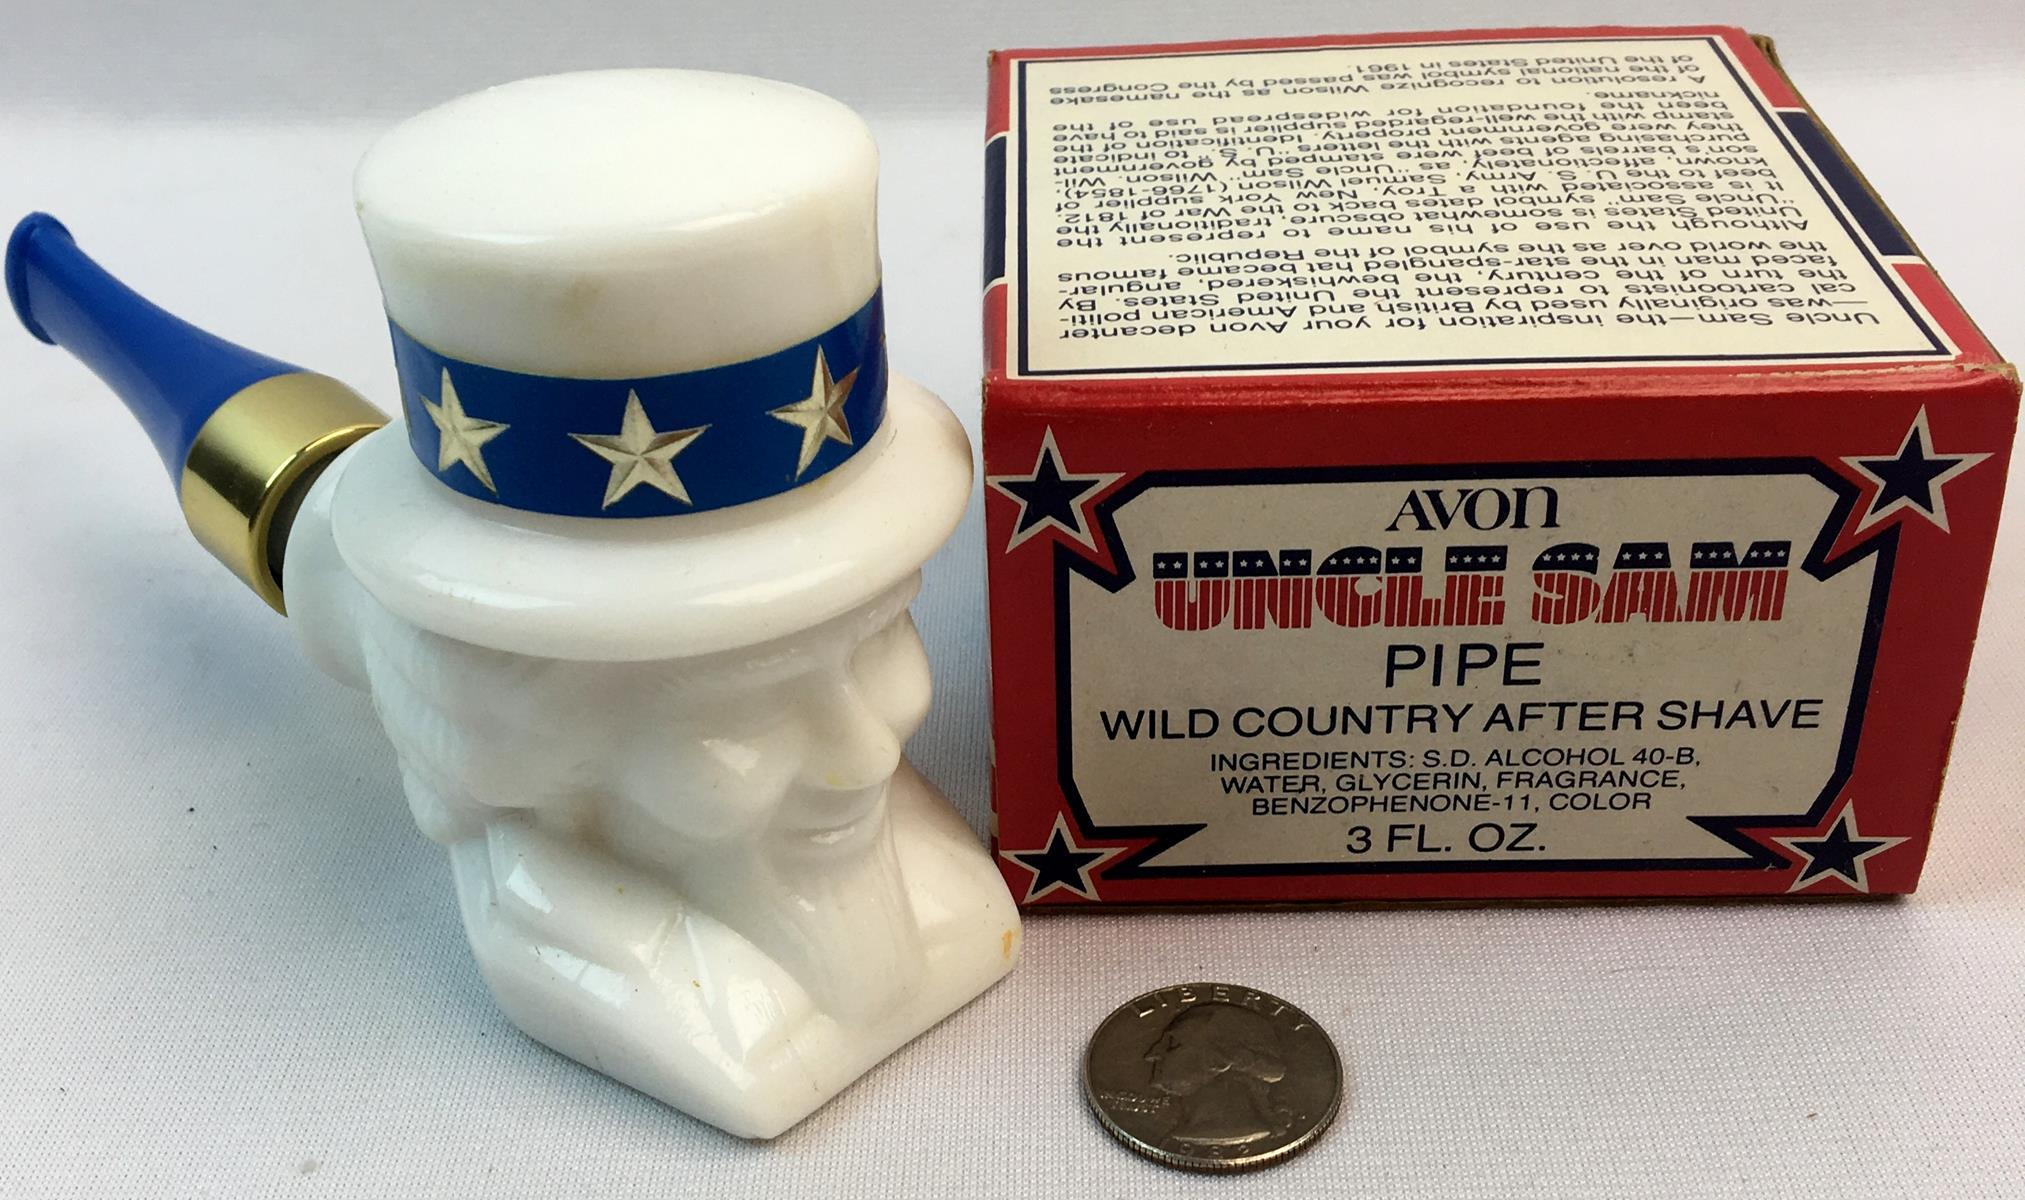 Vintage 1970's Uncle Sam Pipe Decanter Bottle Avon Wild Country After Shave w/ Box